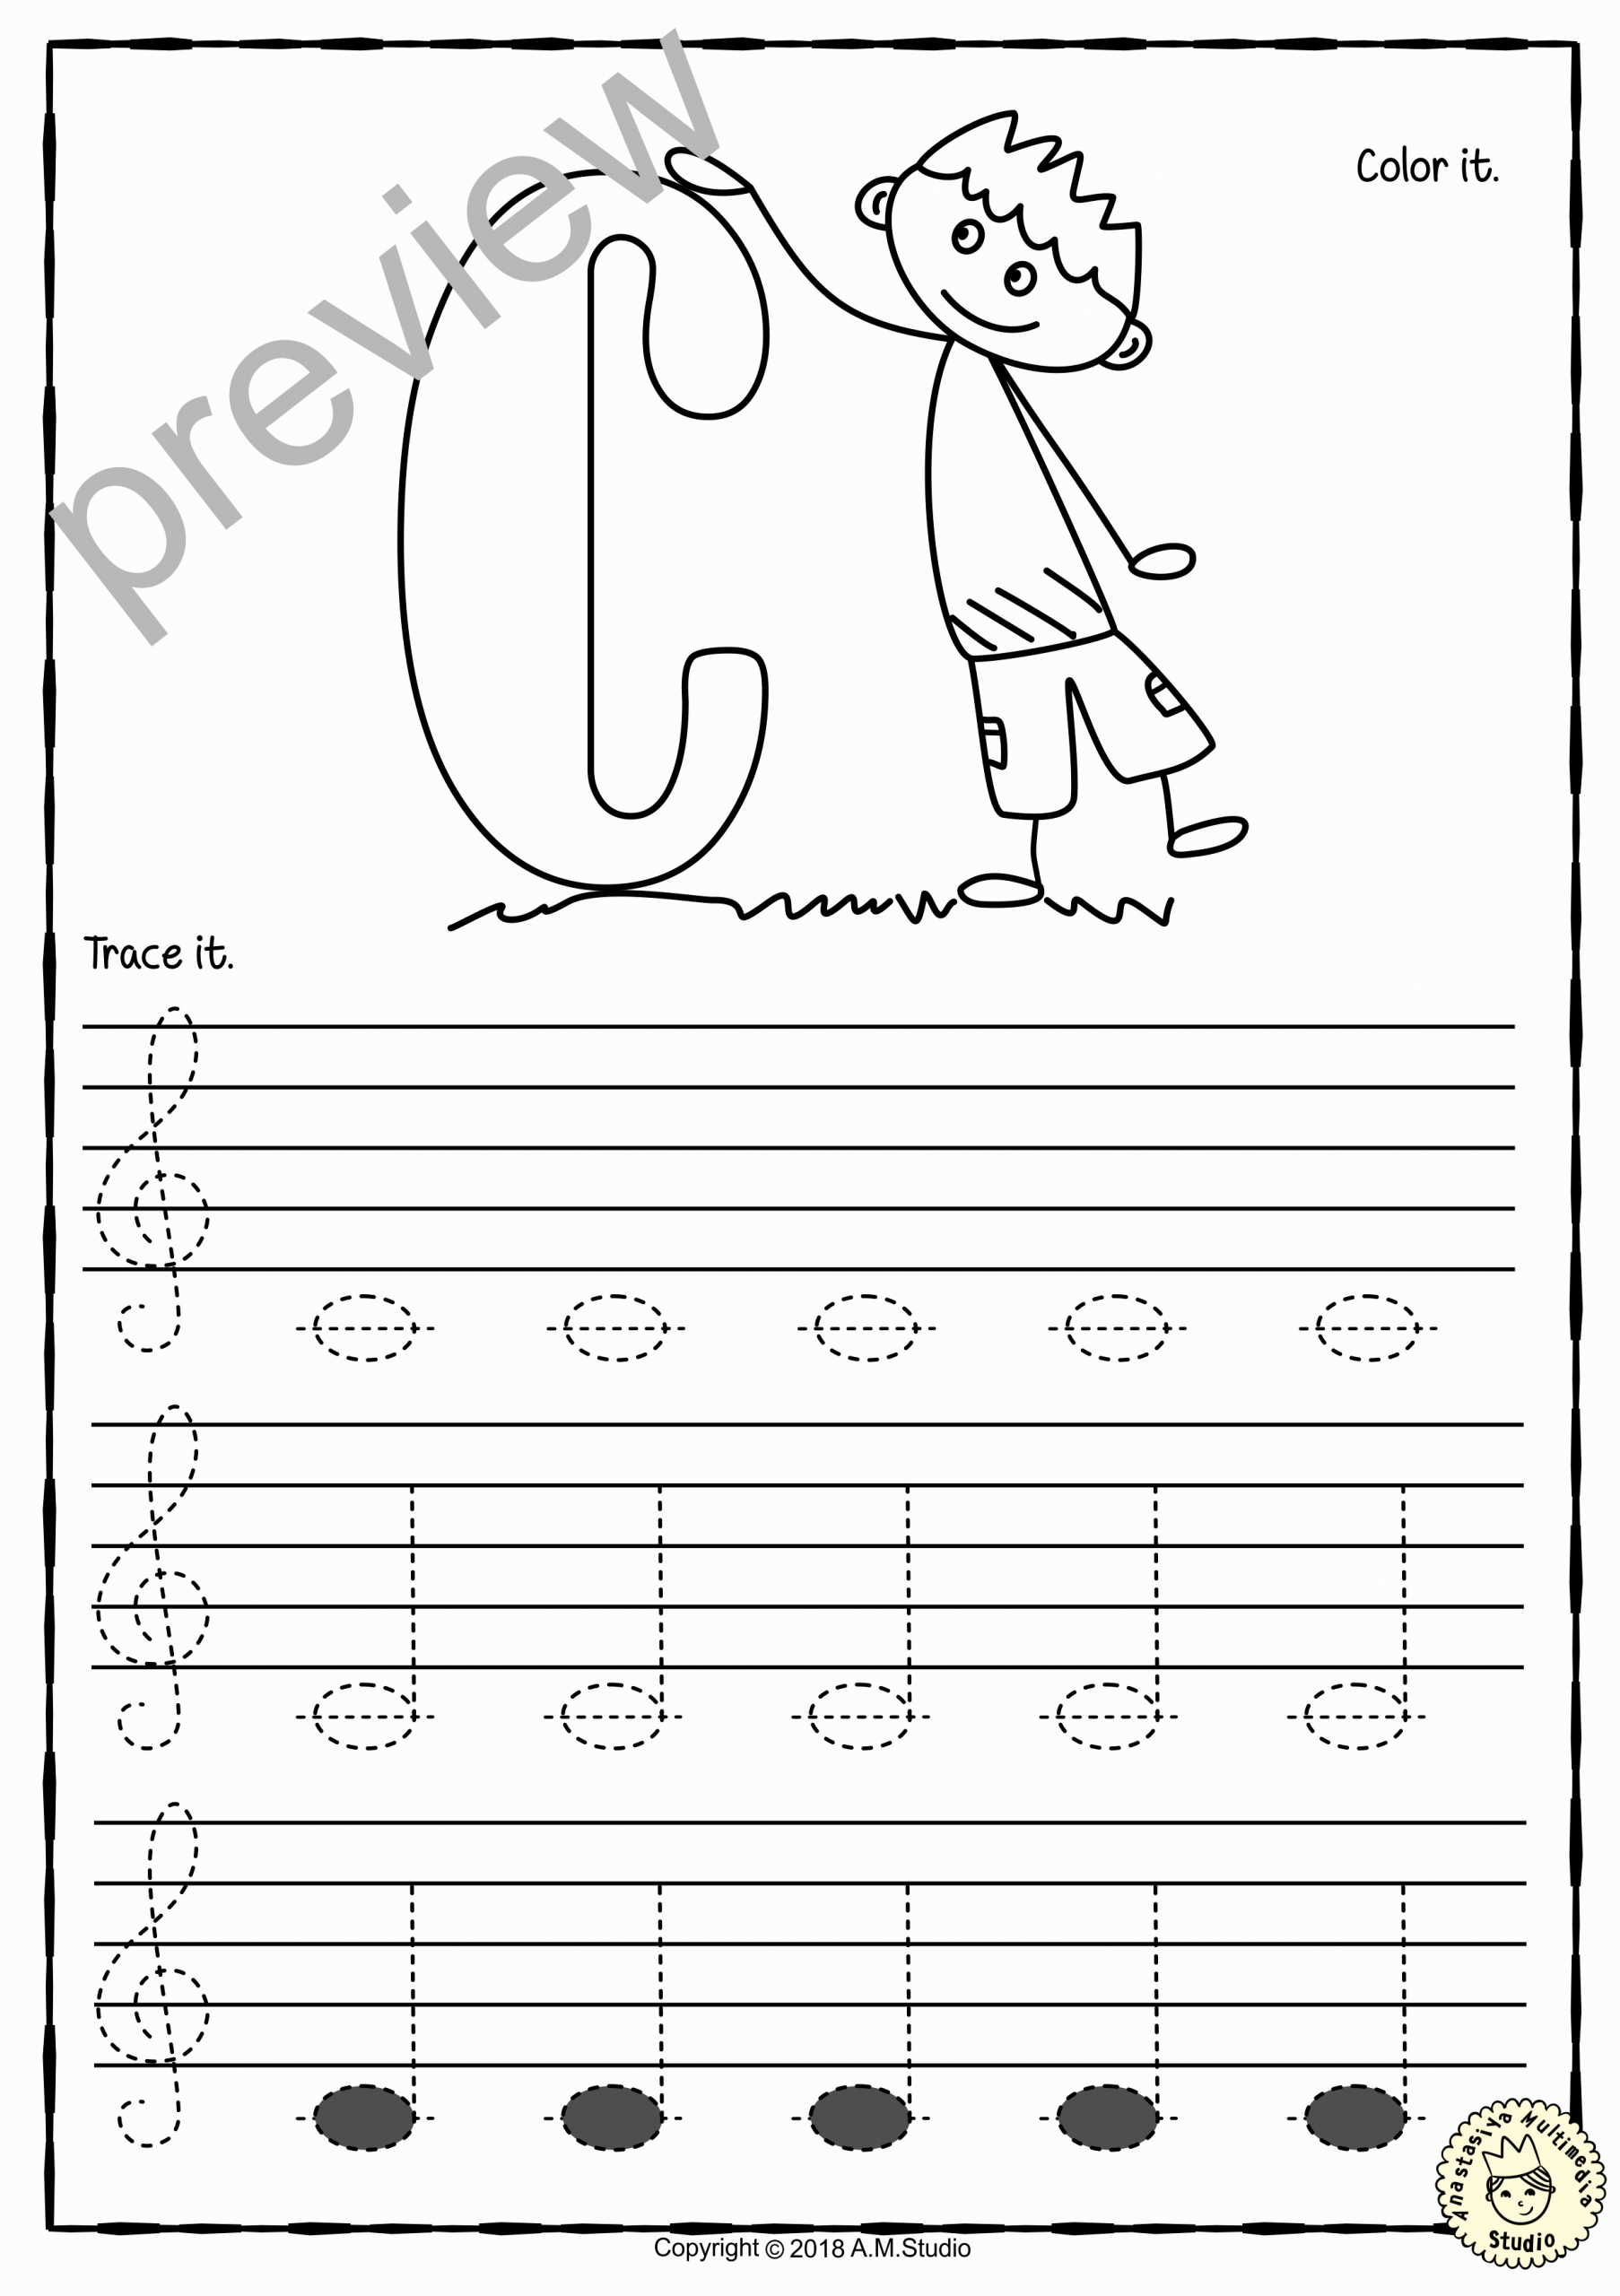 Piano Worksheets for Kids Fresh Tracing Music Notes Worksheets for Kids Treble Clef